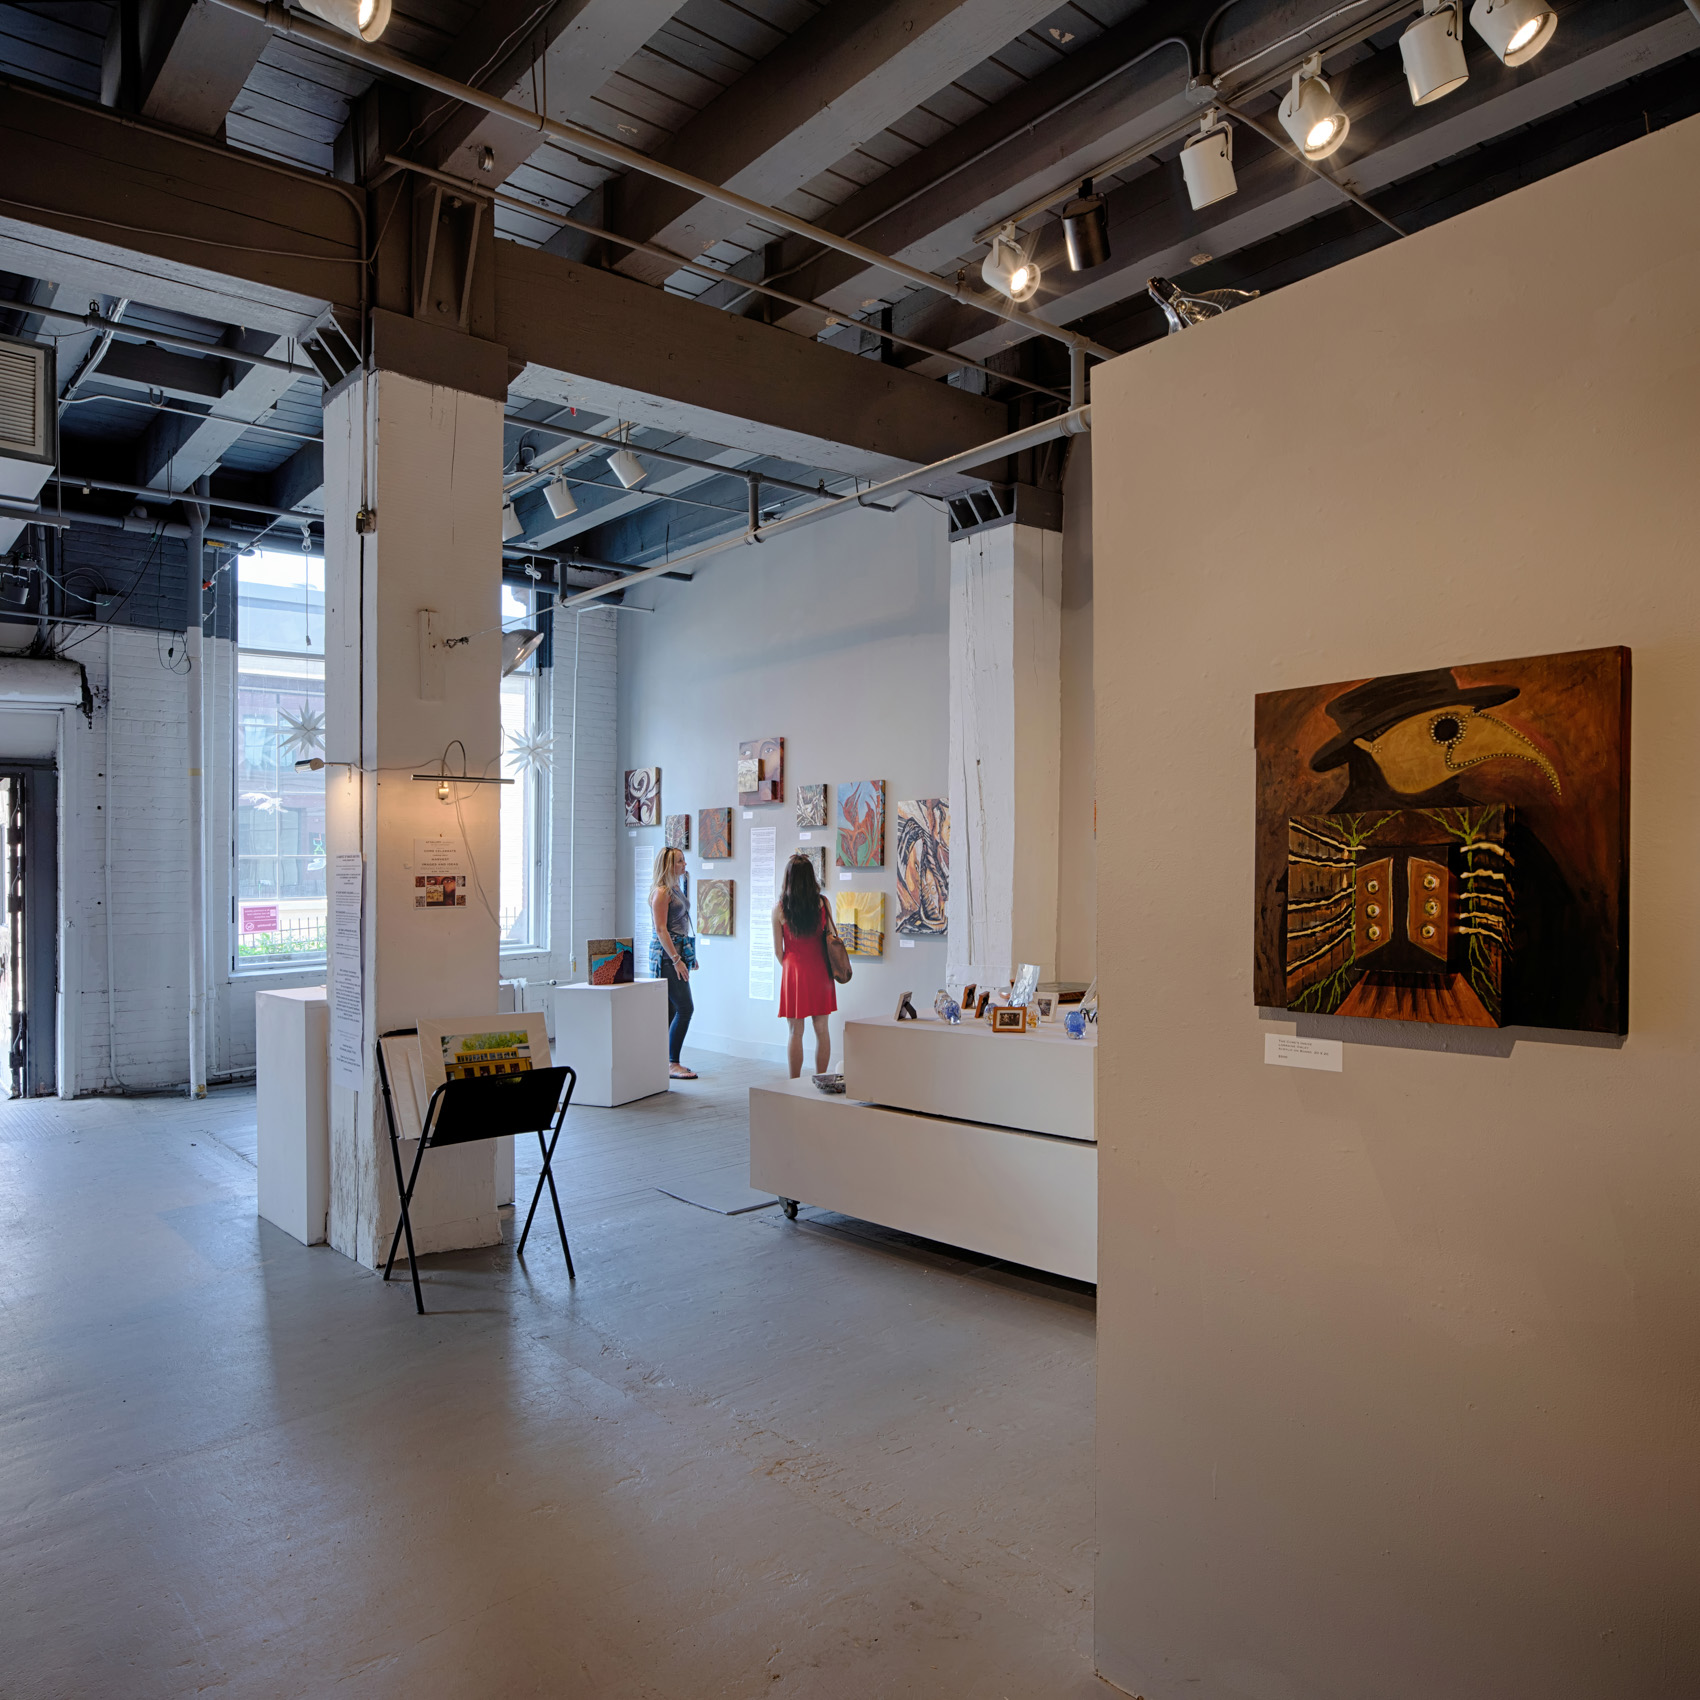 COM_44_Arts_Space_Northern_Warehouse_0002a